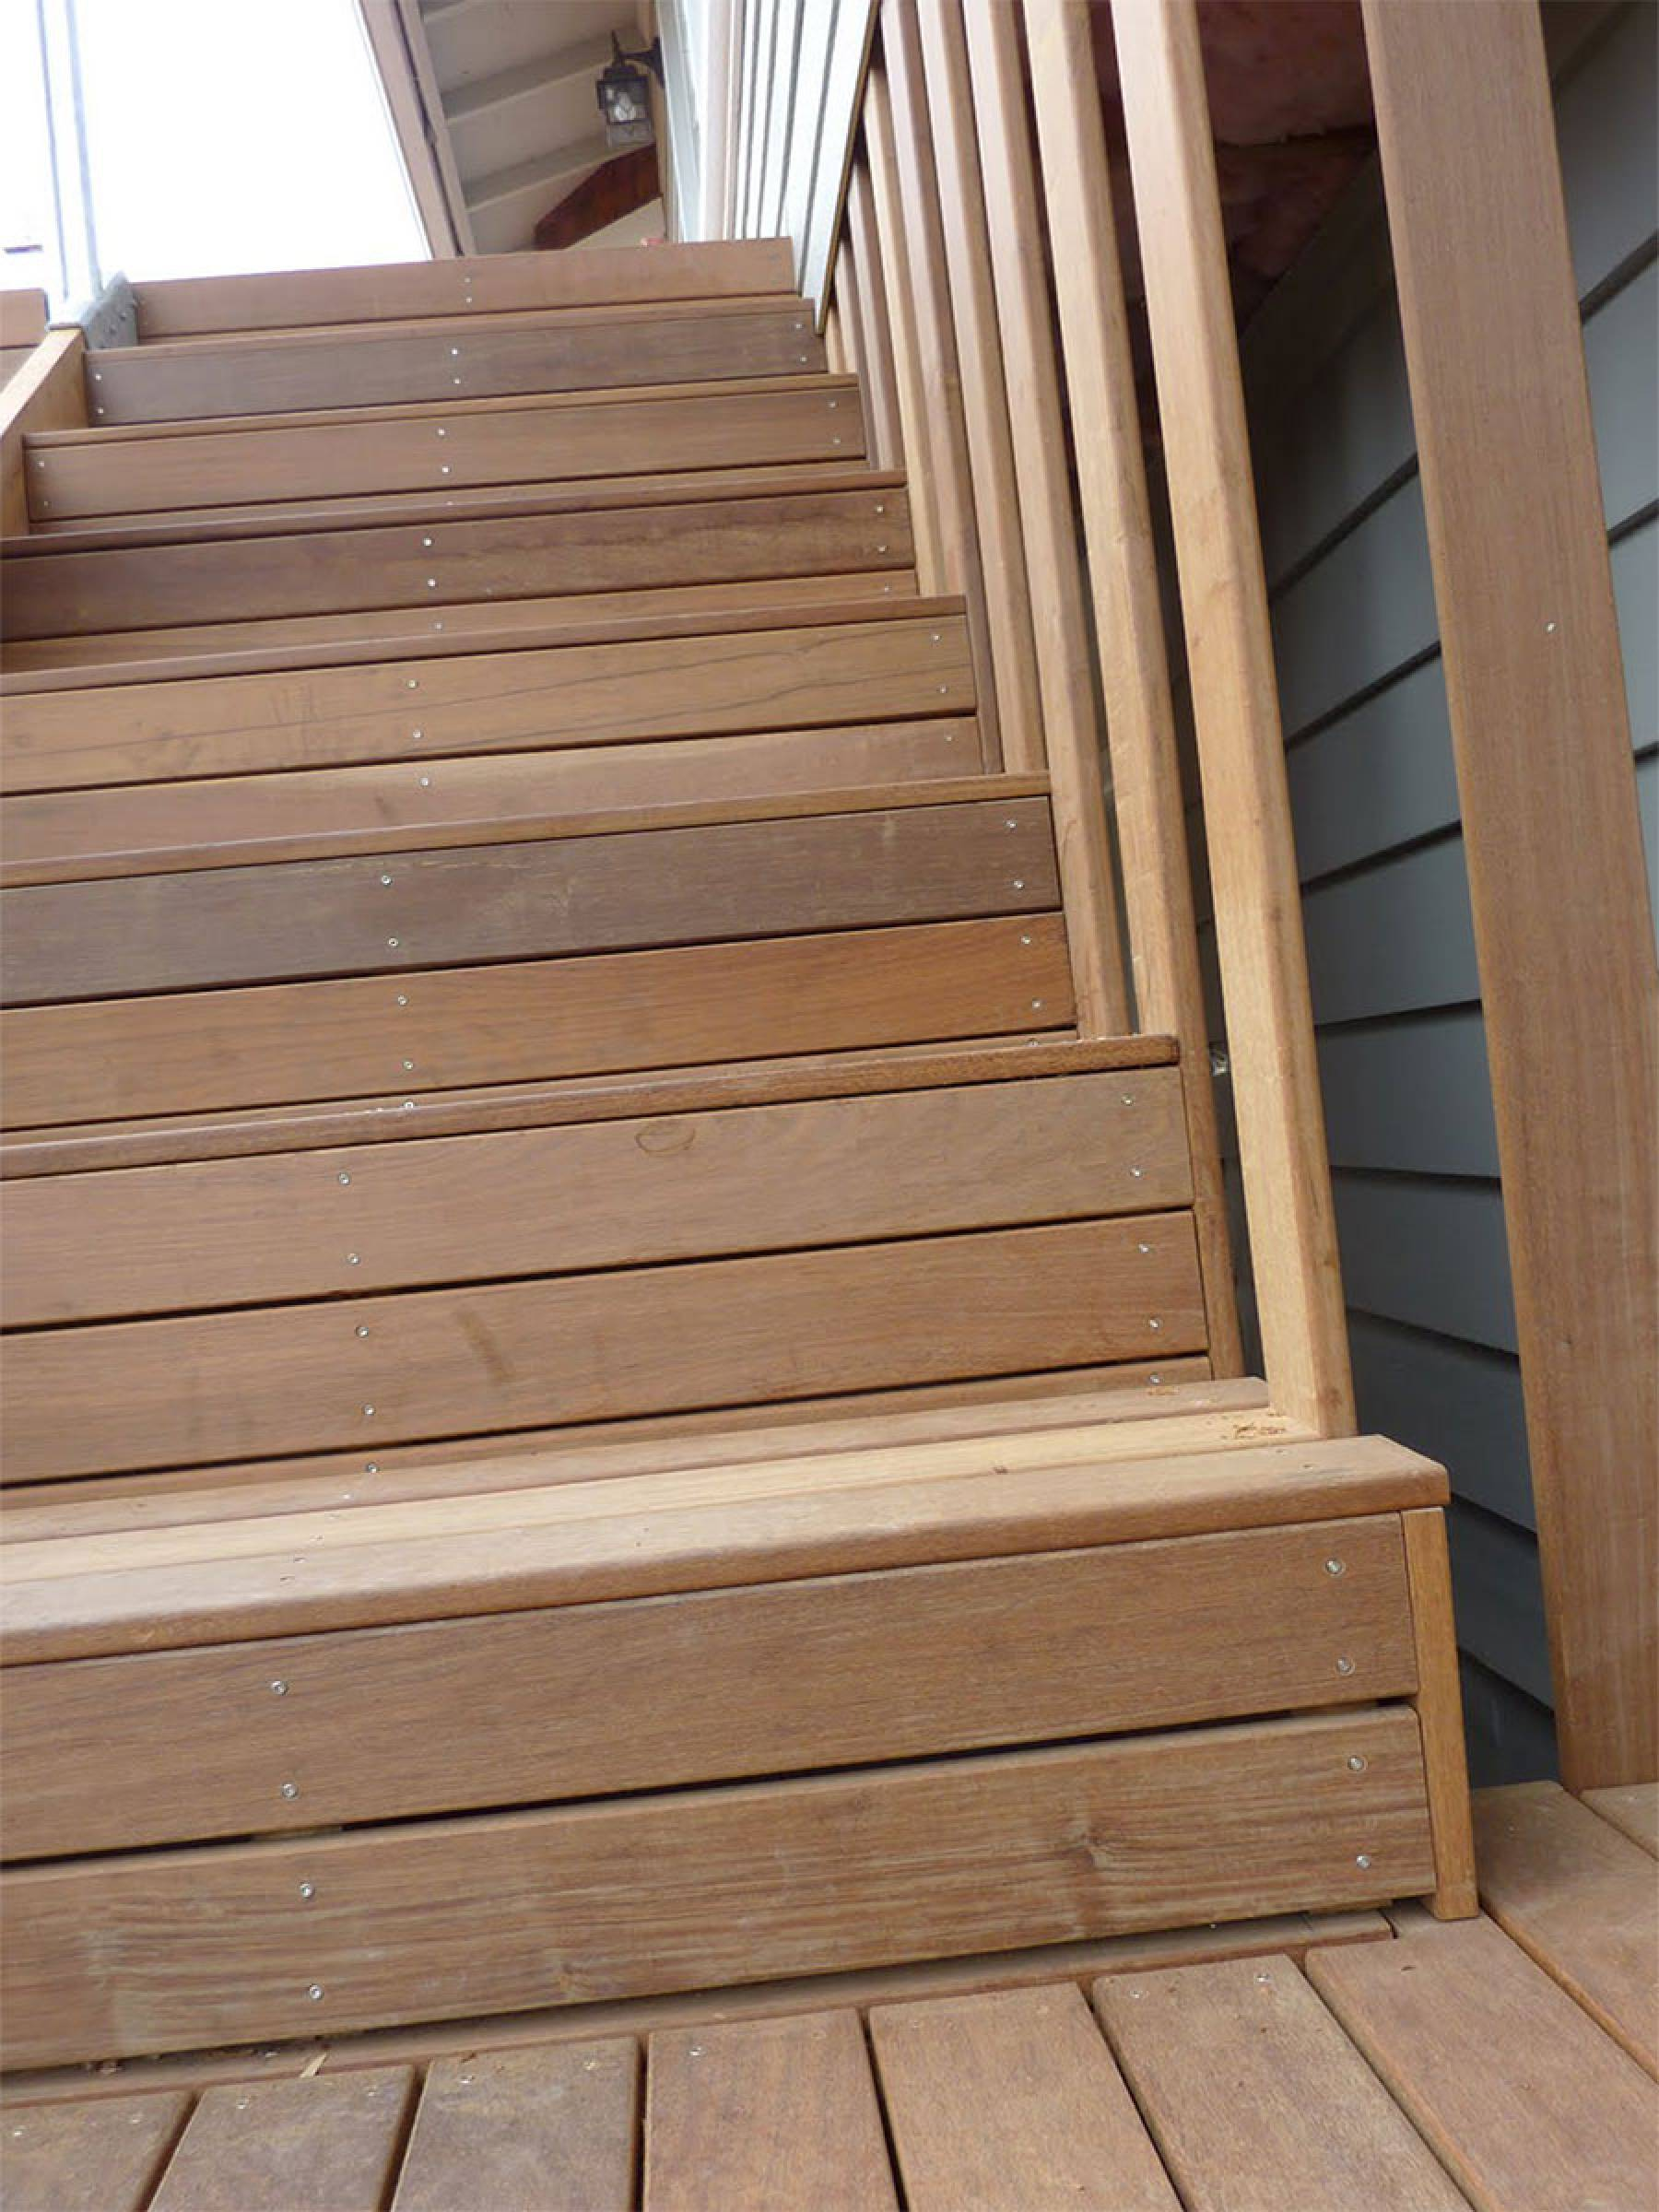 Ipe wood tiles - Suitable materials for decking ...